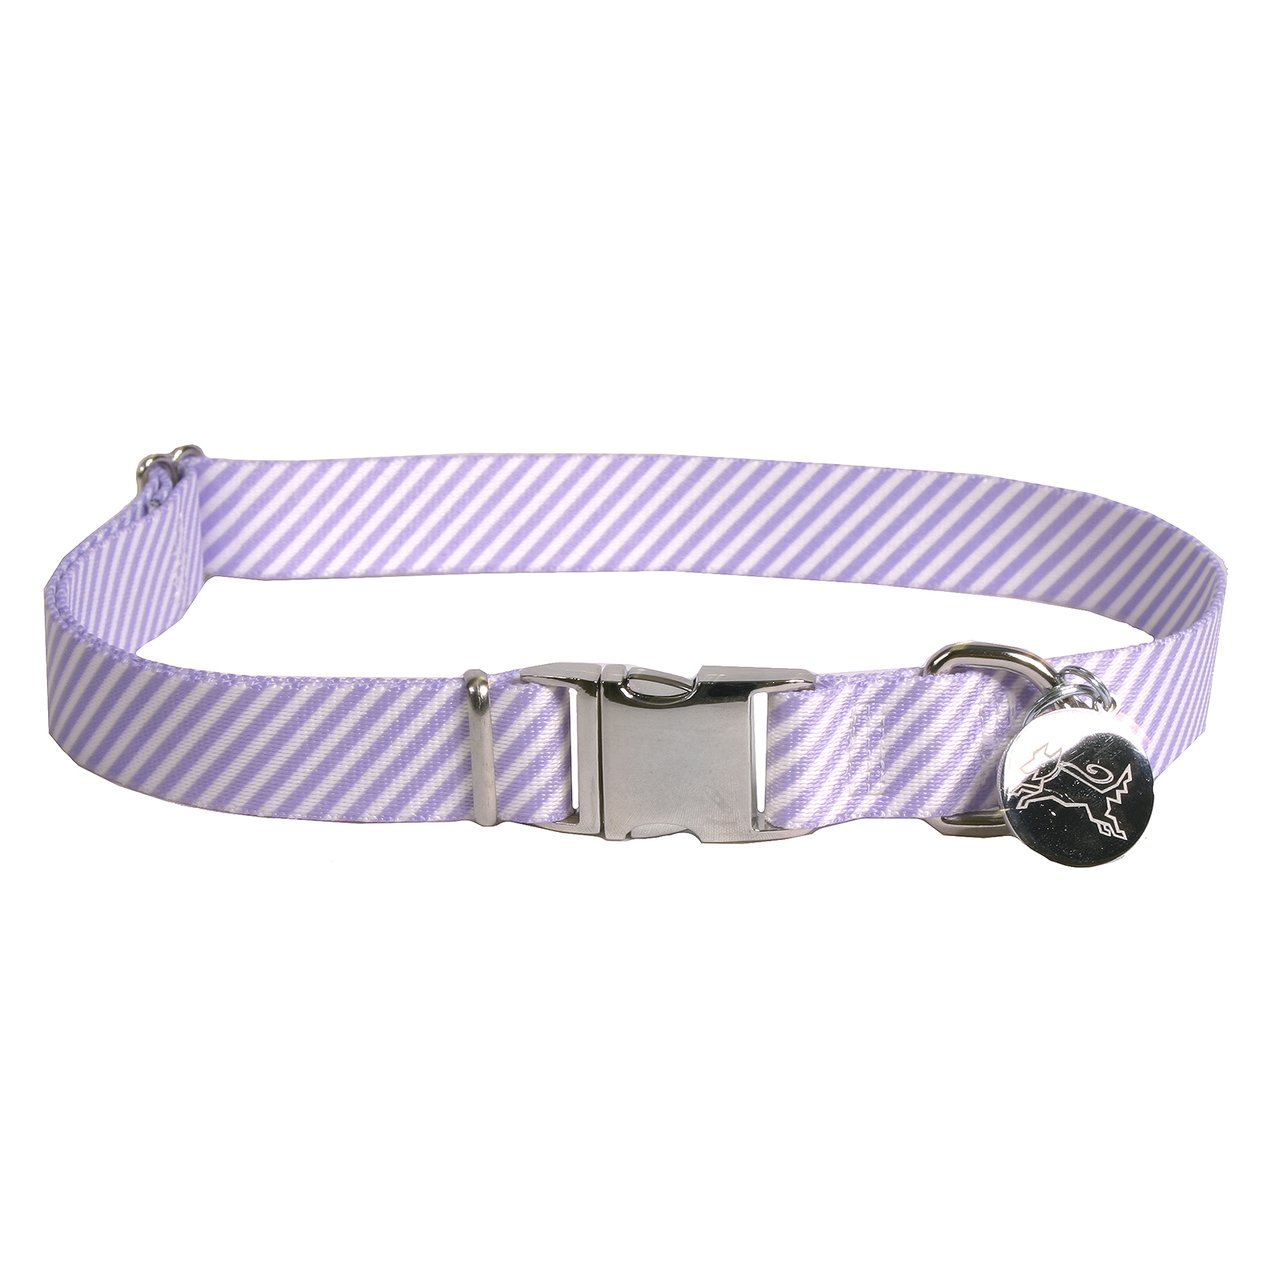 Southern Dawg Seersucker Striped Premium Dog Collar, Purple - Medium 14-20'' length x 3/4'' wide by Yellow Dog Design (Image #3)